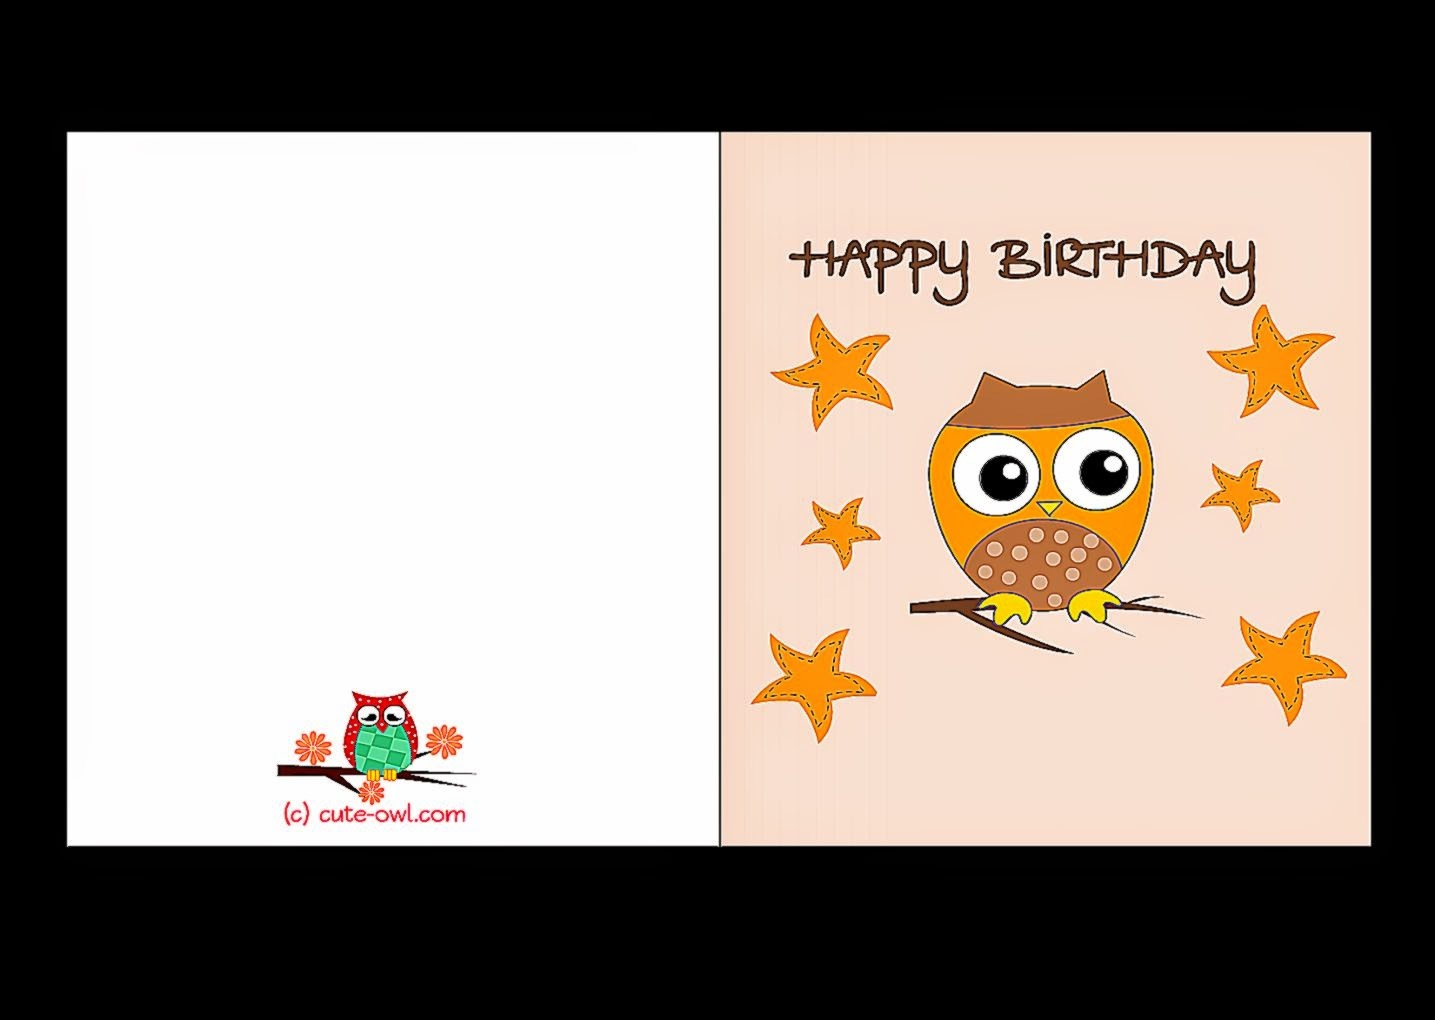 free birthday cards to print out ; Print-Out-Birthday-New-Birthday-Cards-To-Print